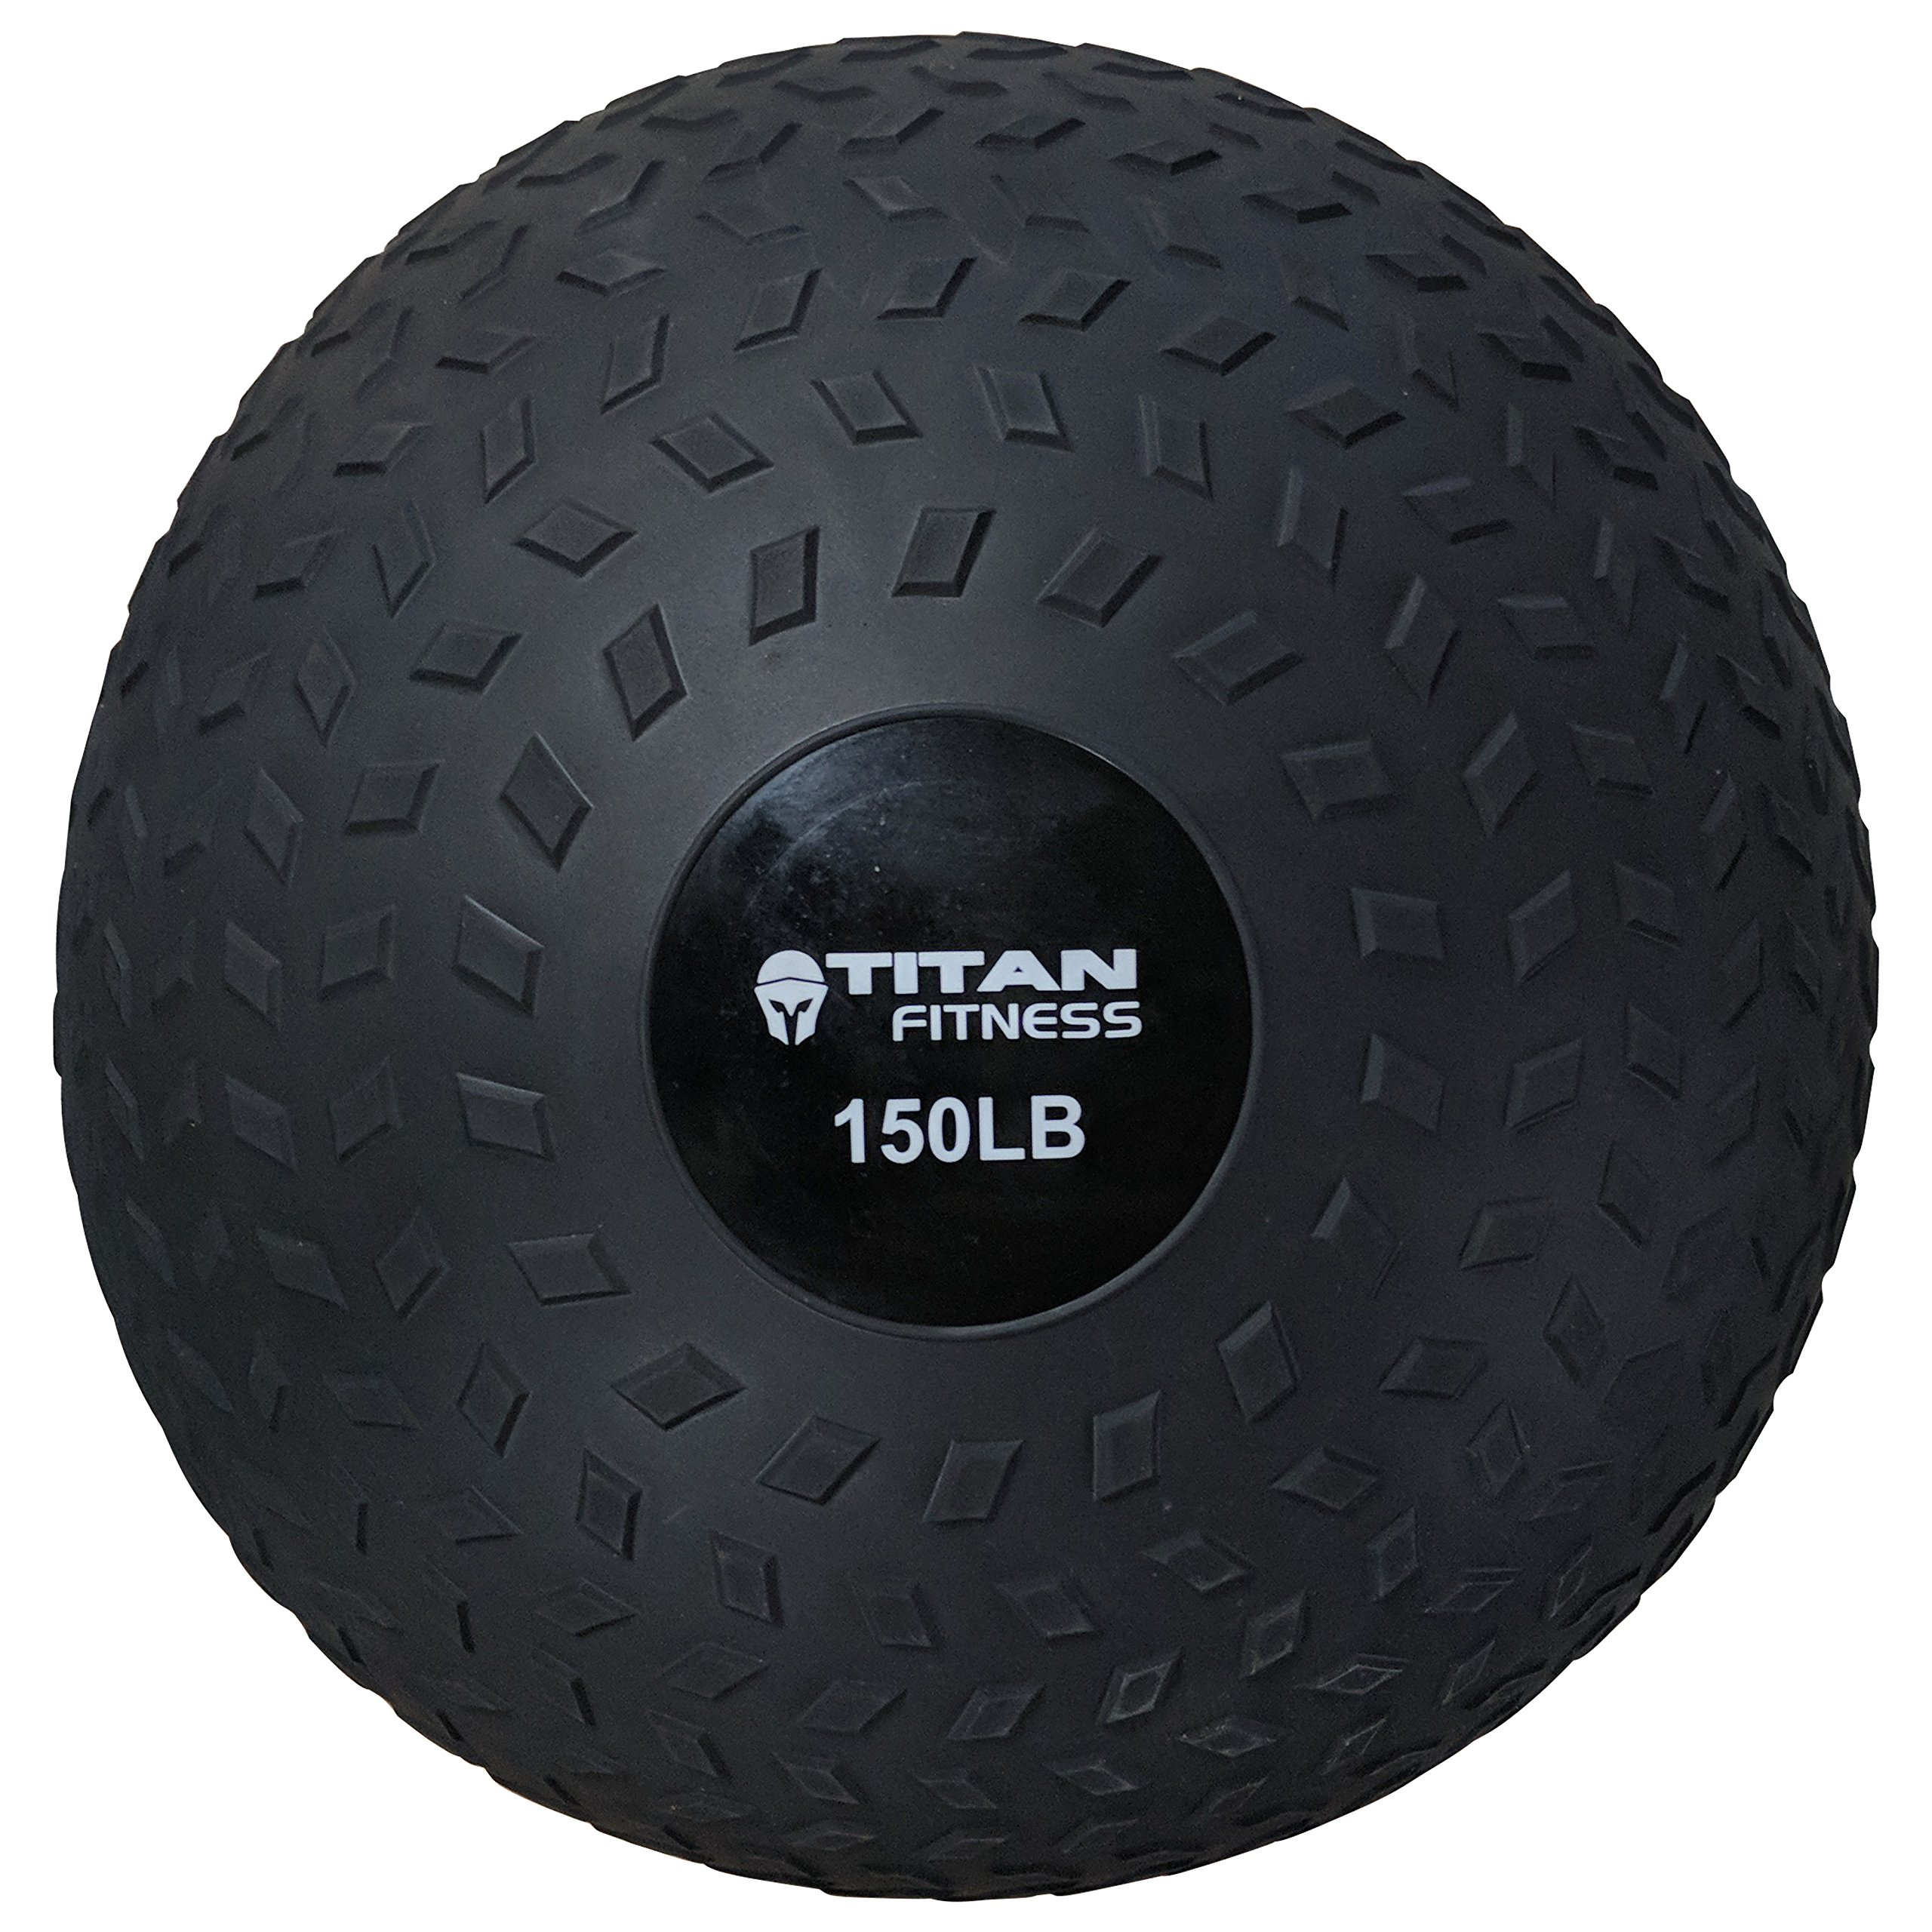 Titan 80-150 LB Slam Spike Ball Rubber Exercise Weight Workout by TITAN FITNESS